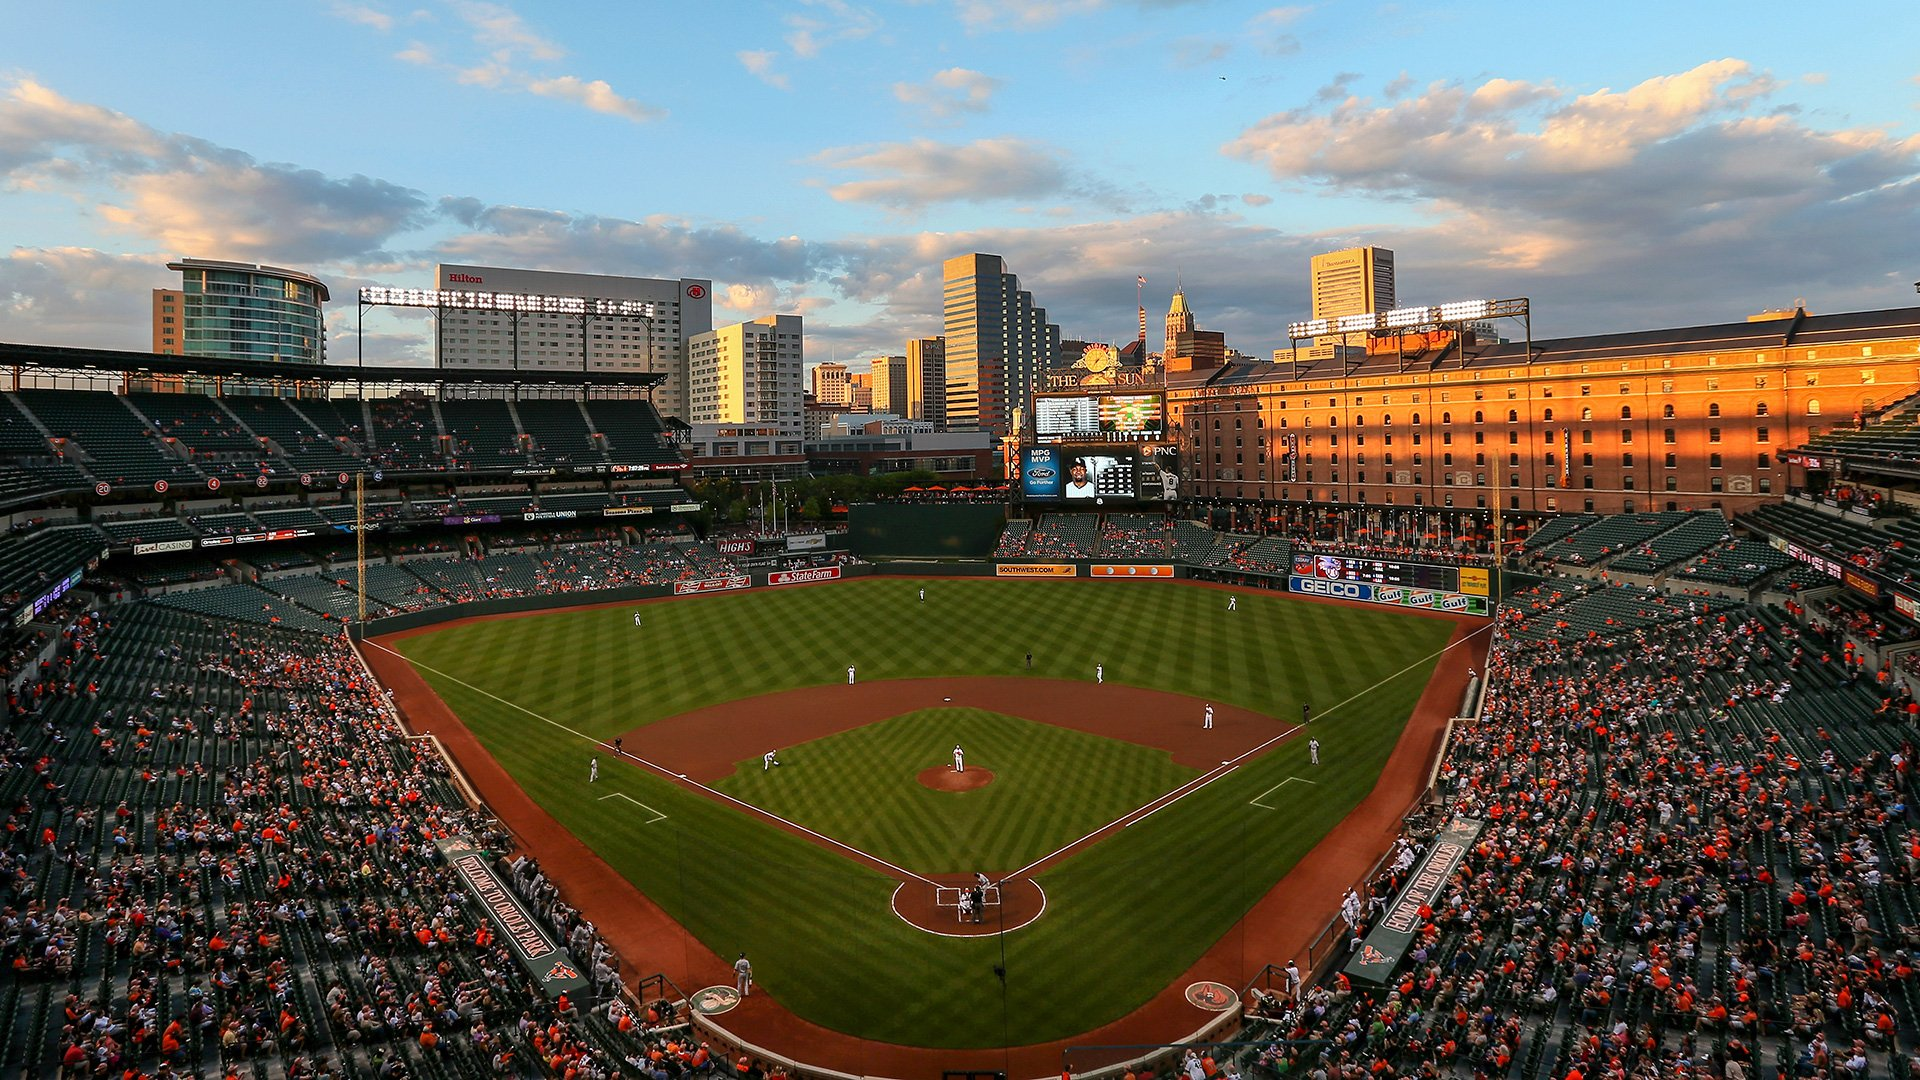 Camden Yards Wallpaper - WallpaperSafari